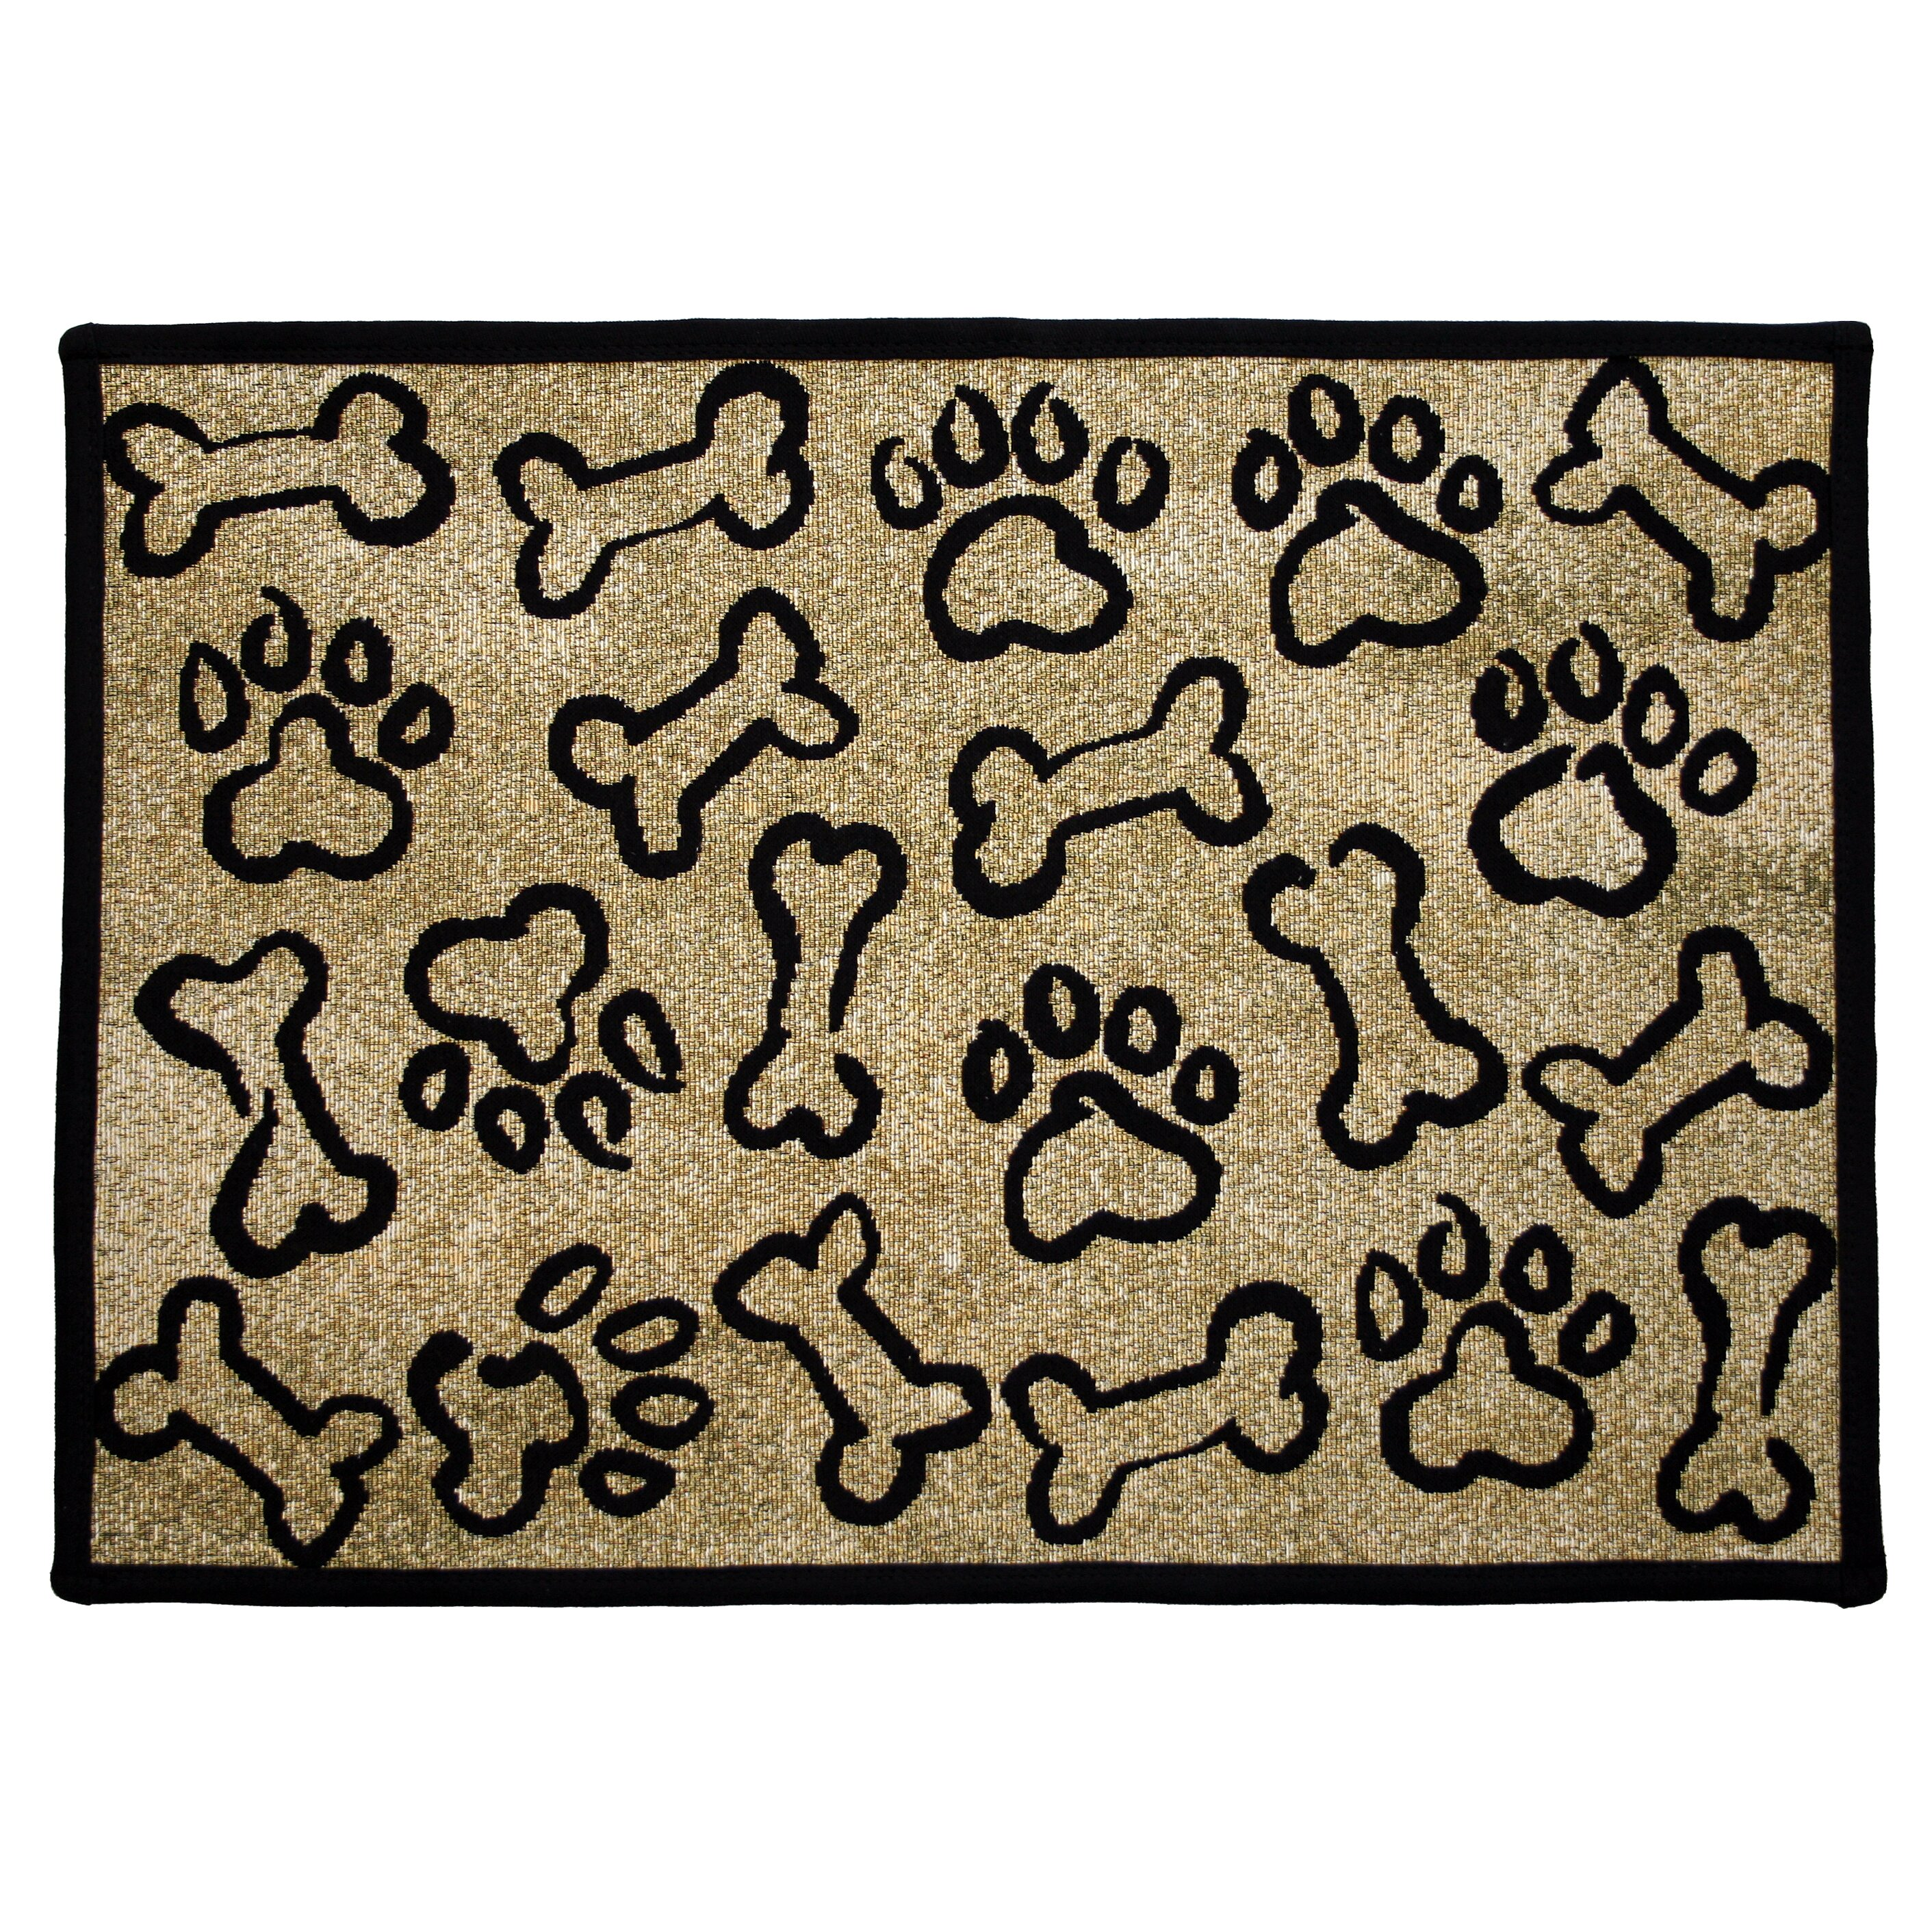 Park B Smith Ltd PB Paws & Co. Gold Puppy Paws Tapestry